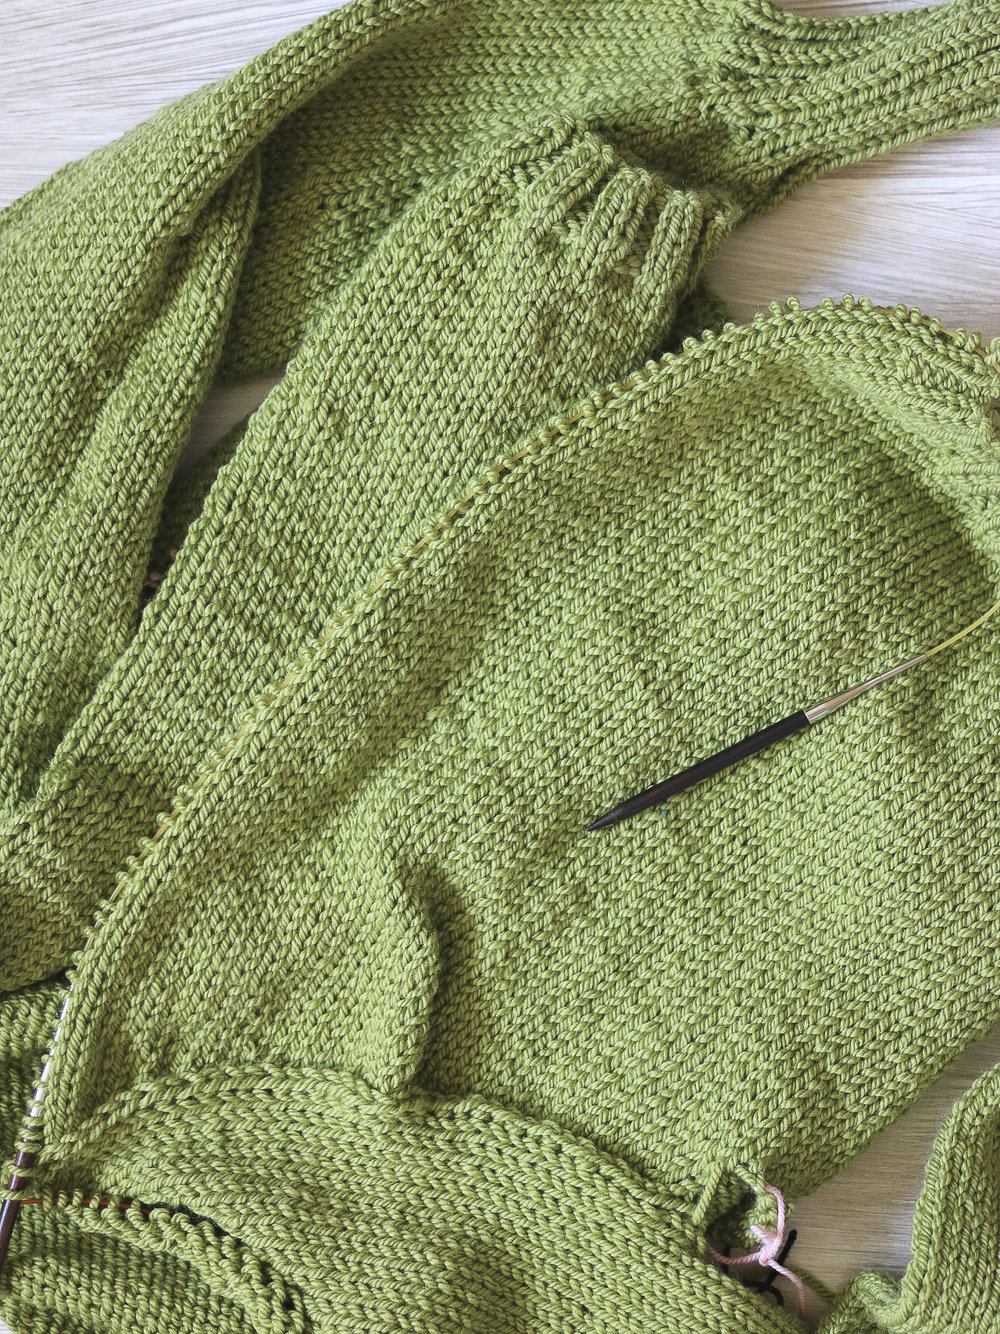 Picking up stitches on the edge of a sweater for button bands